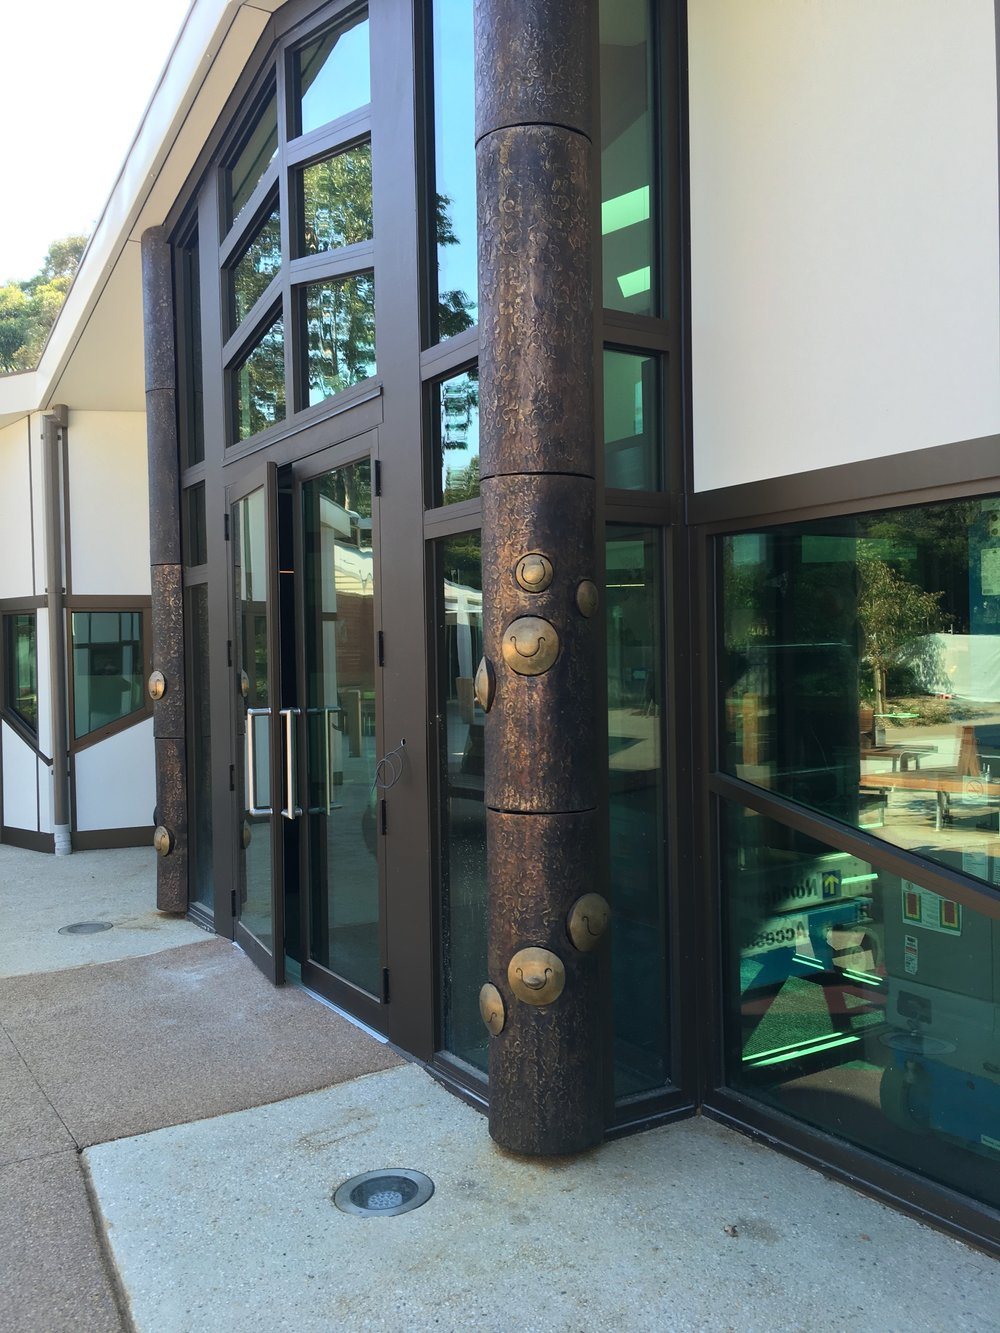 Montrose Sound Columns, Montrose Library, 2017. Playable bronze  tongue drums set into the two bronze columns as part of the ArchitectureMatters Project Design.